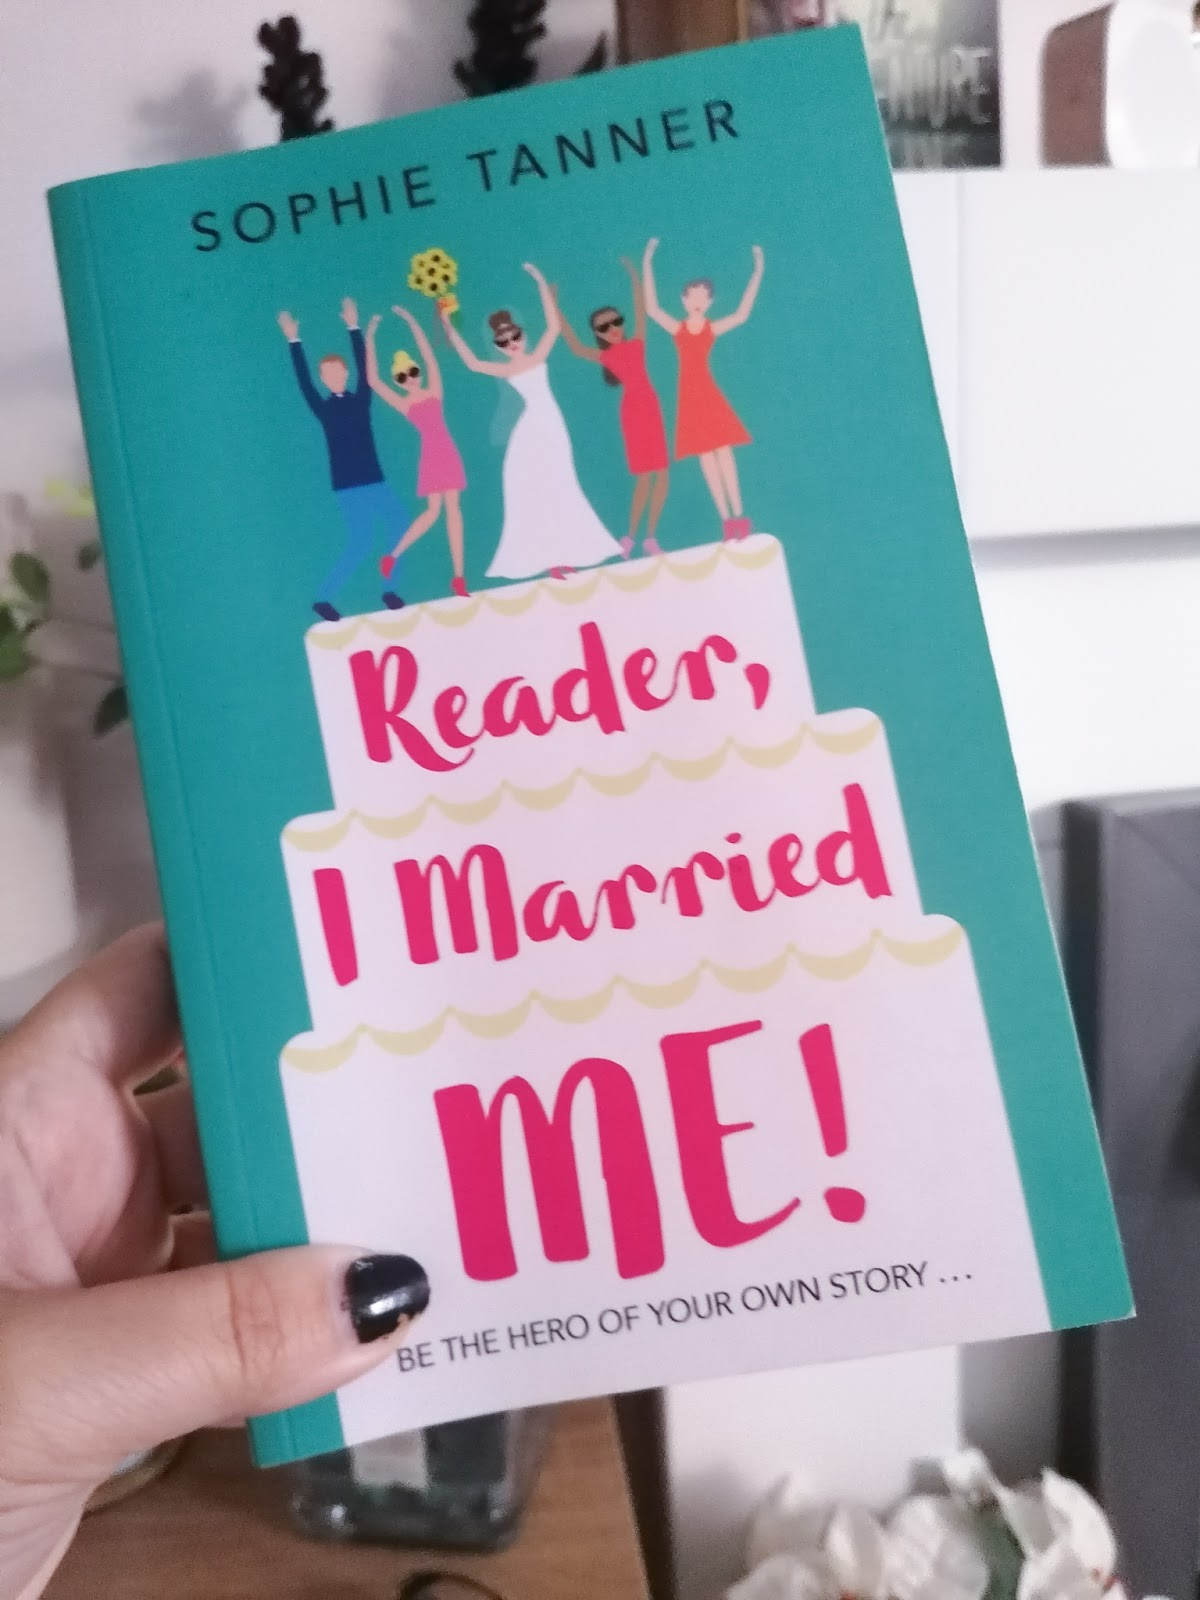 Book review - Reader, I married me - Sophie Tanner